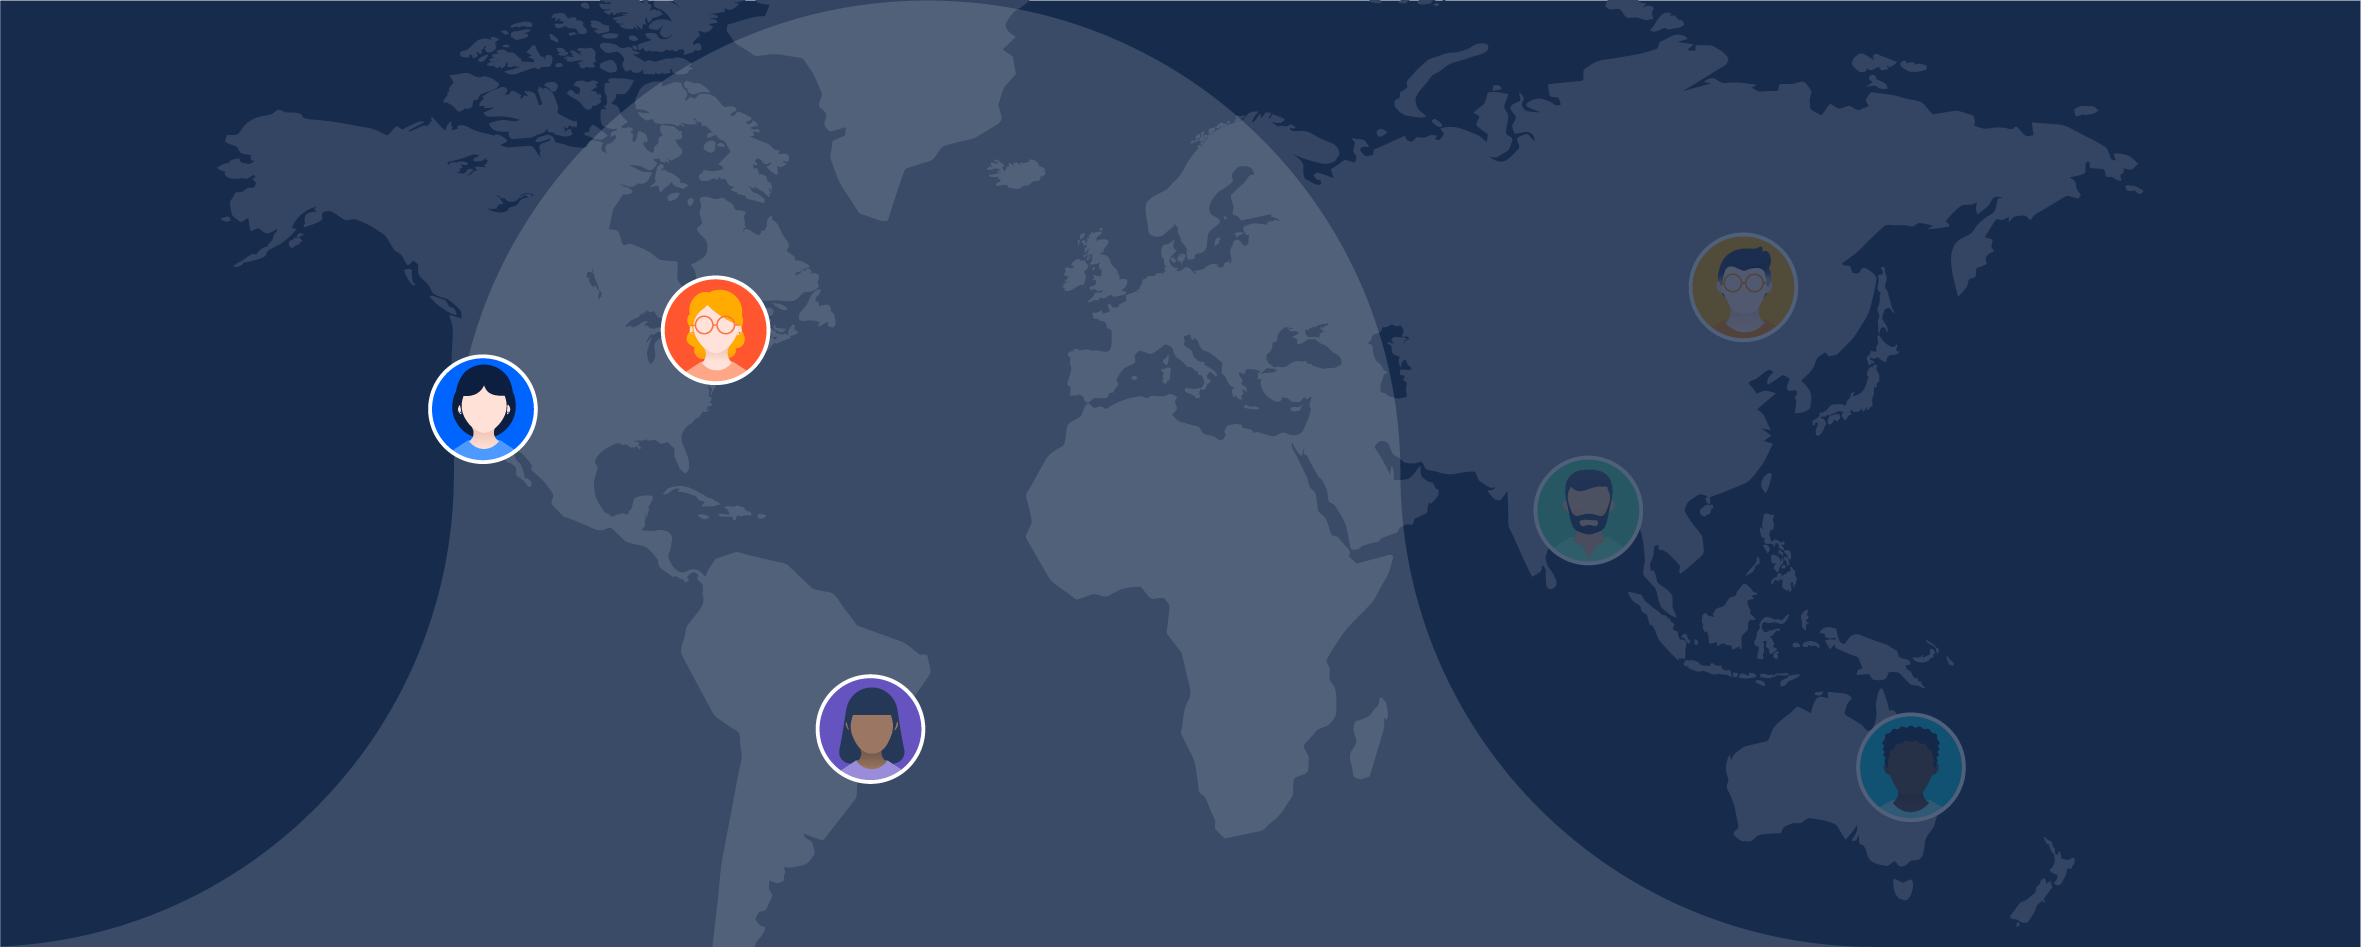 World map with agents highlighted